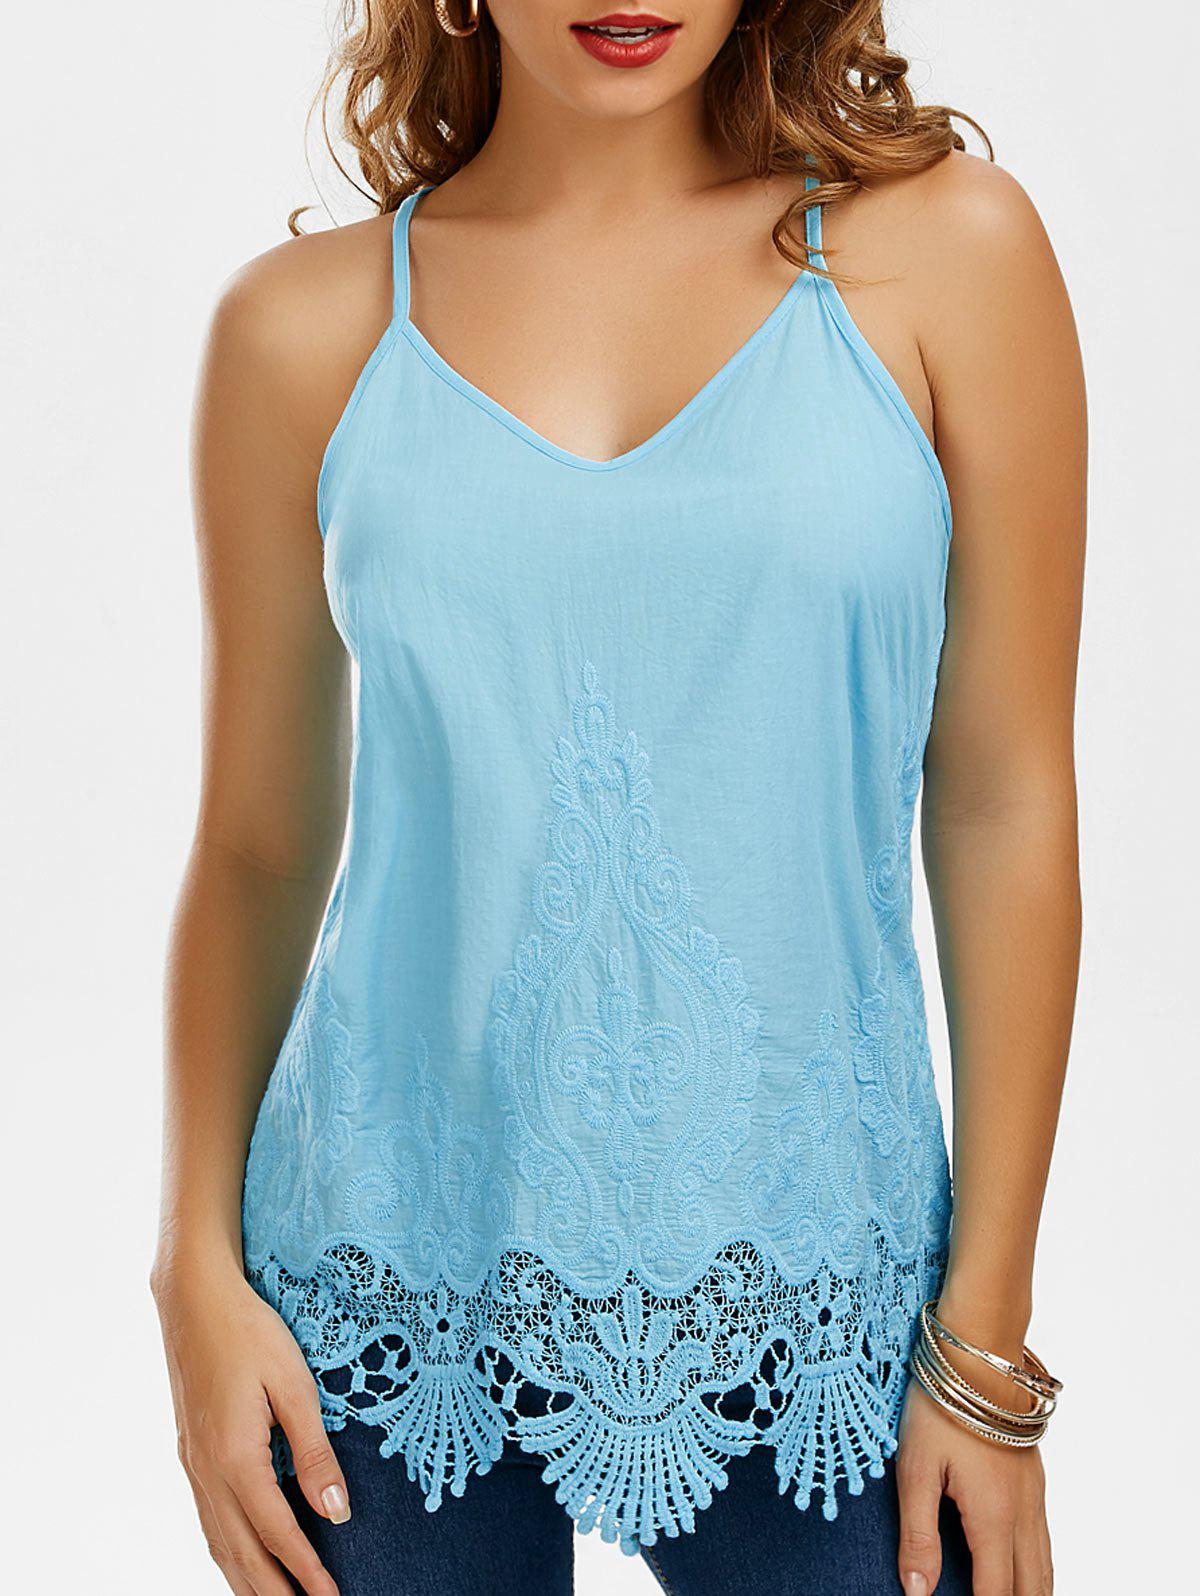 PLUS-REGULAR Women Basic Long Tank Top LACE-TRIM Camisole Layering Bozzolo USA.